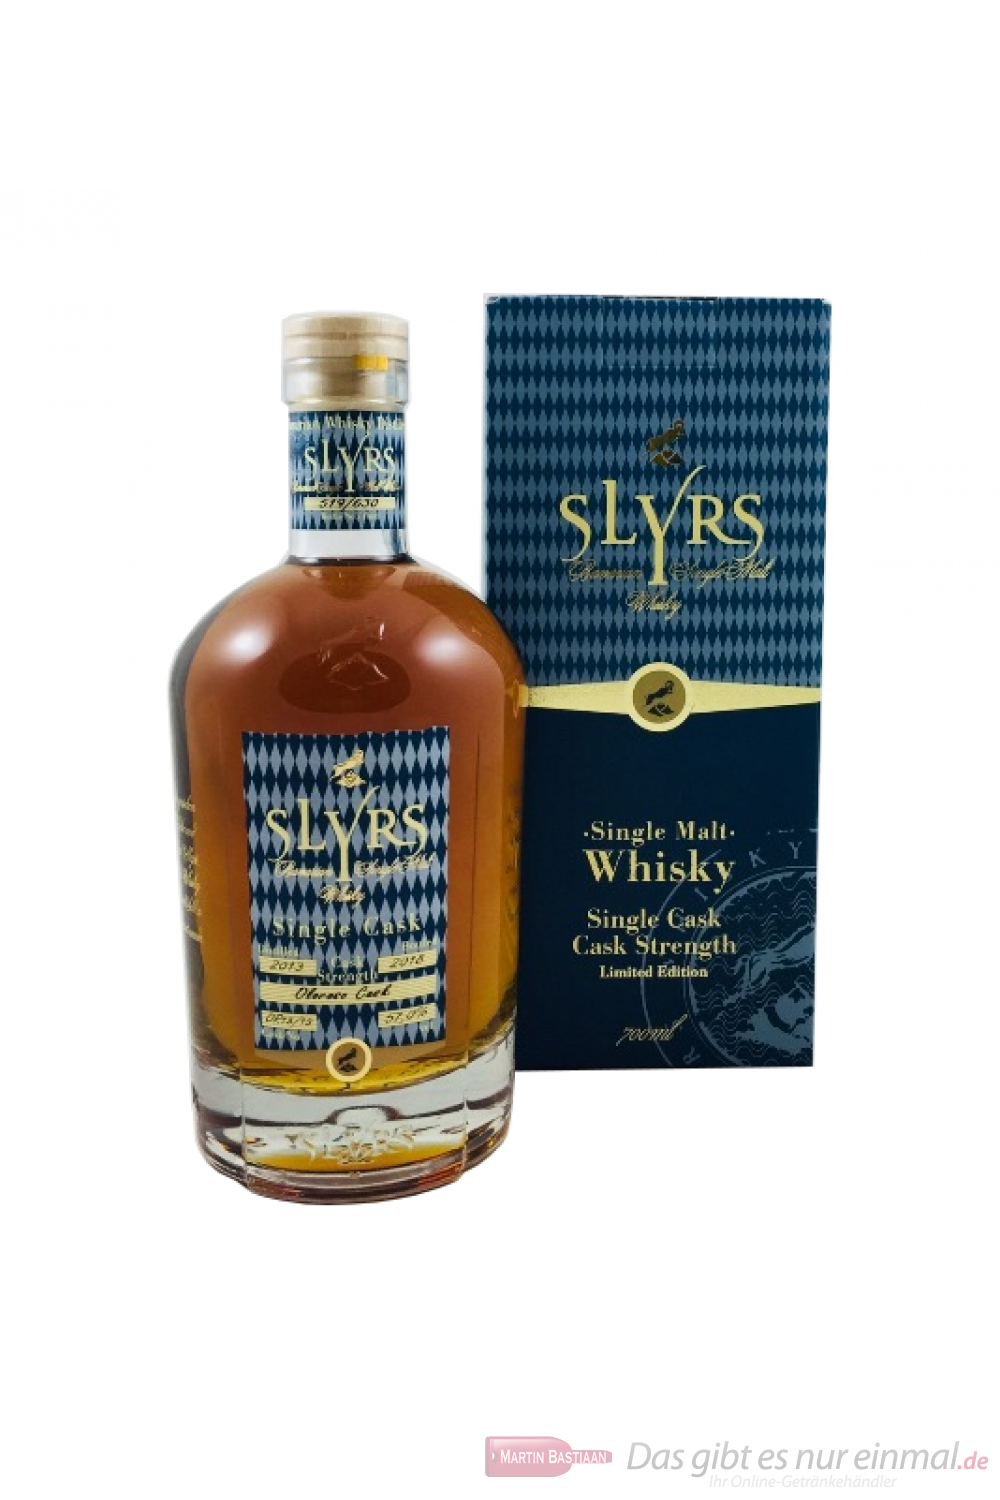 Slyrs Single Cask Oloroso